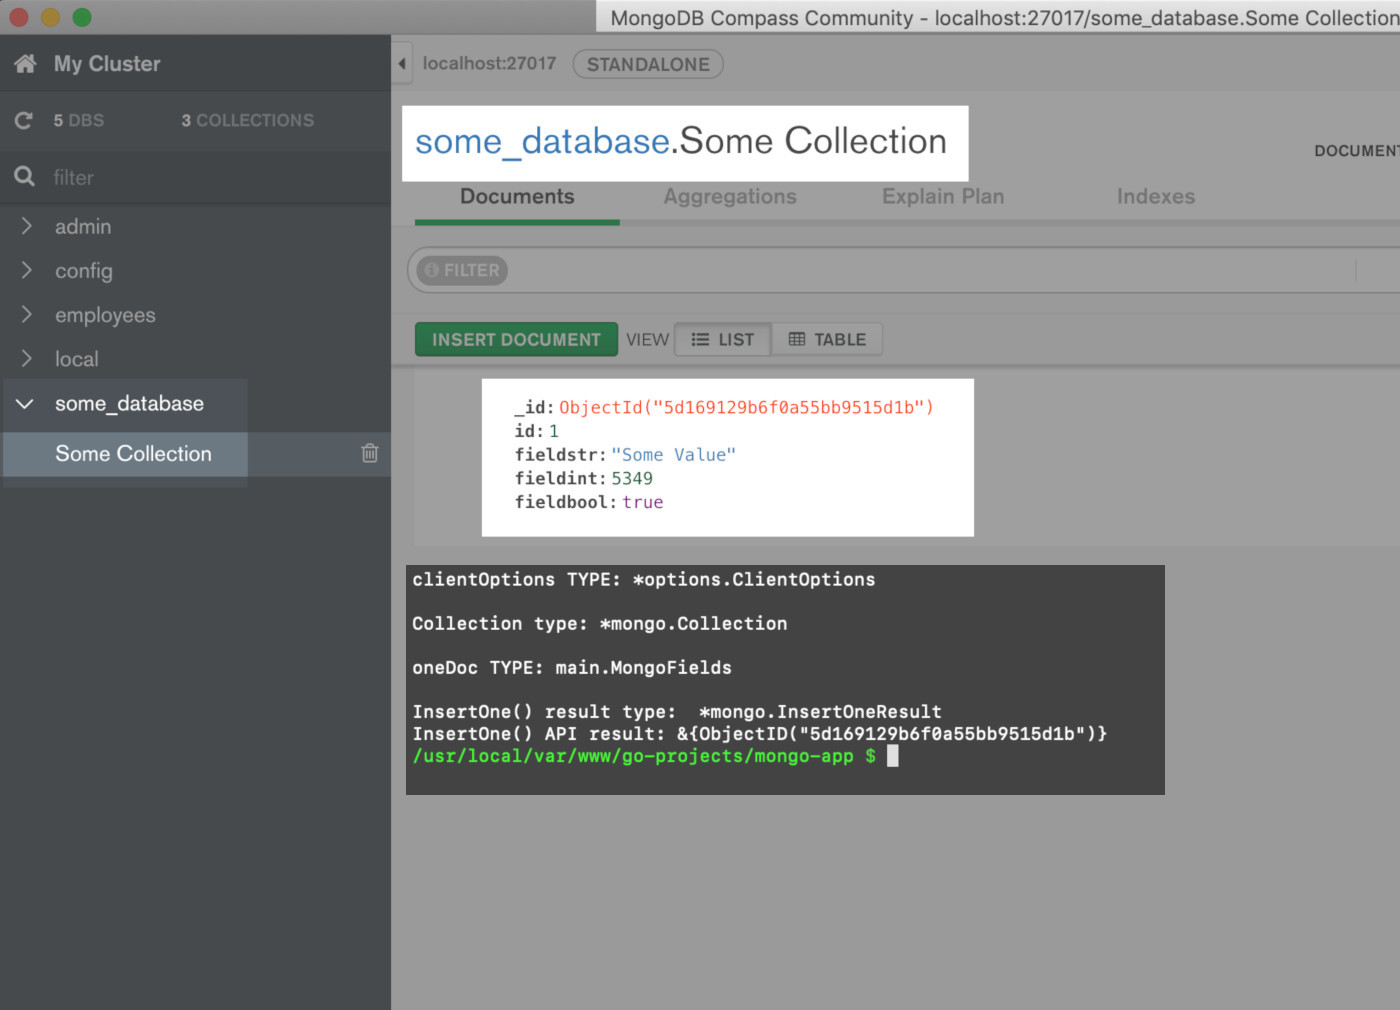 Screenshot of the MongoDB Compass UI getting the inserted document using Golang driver